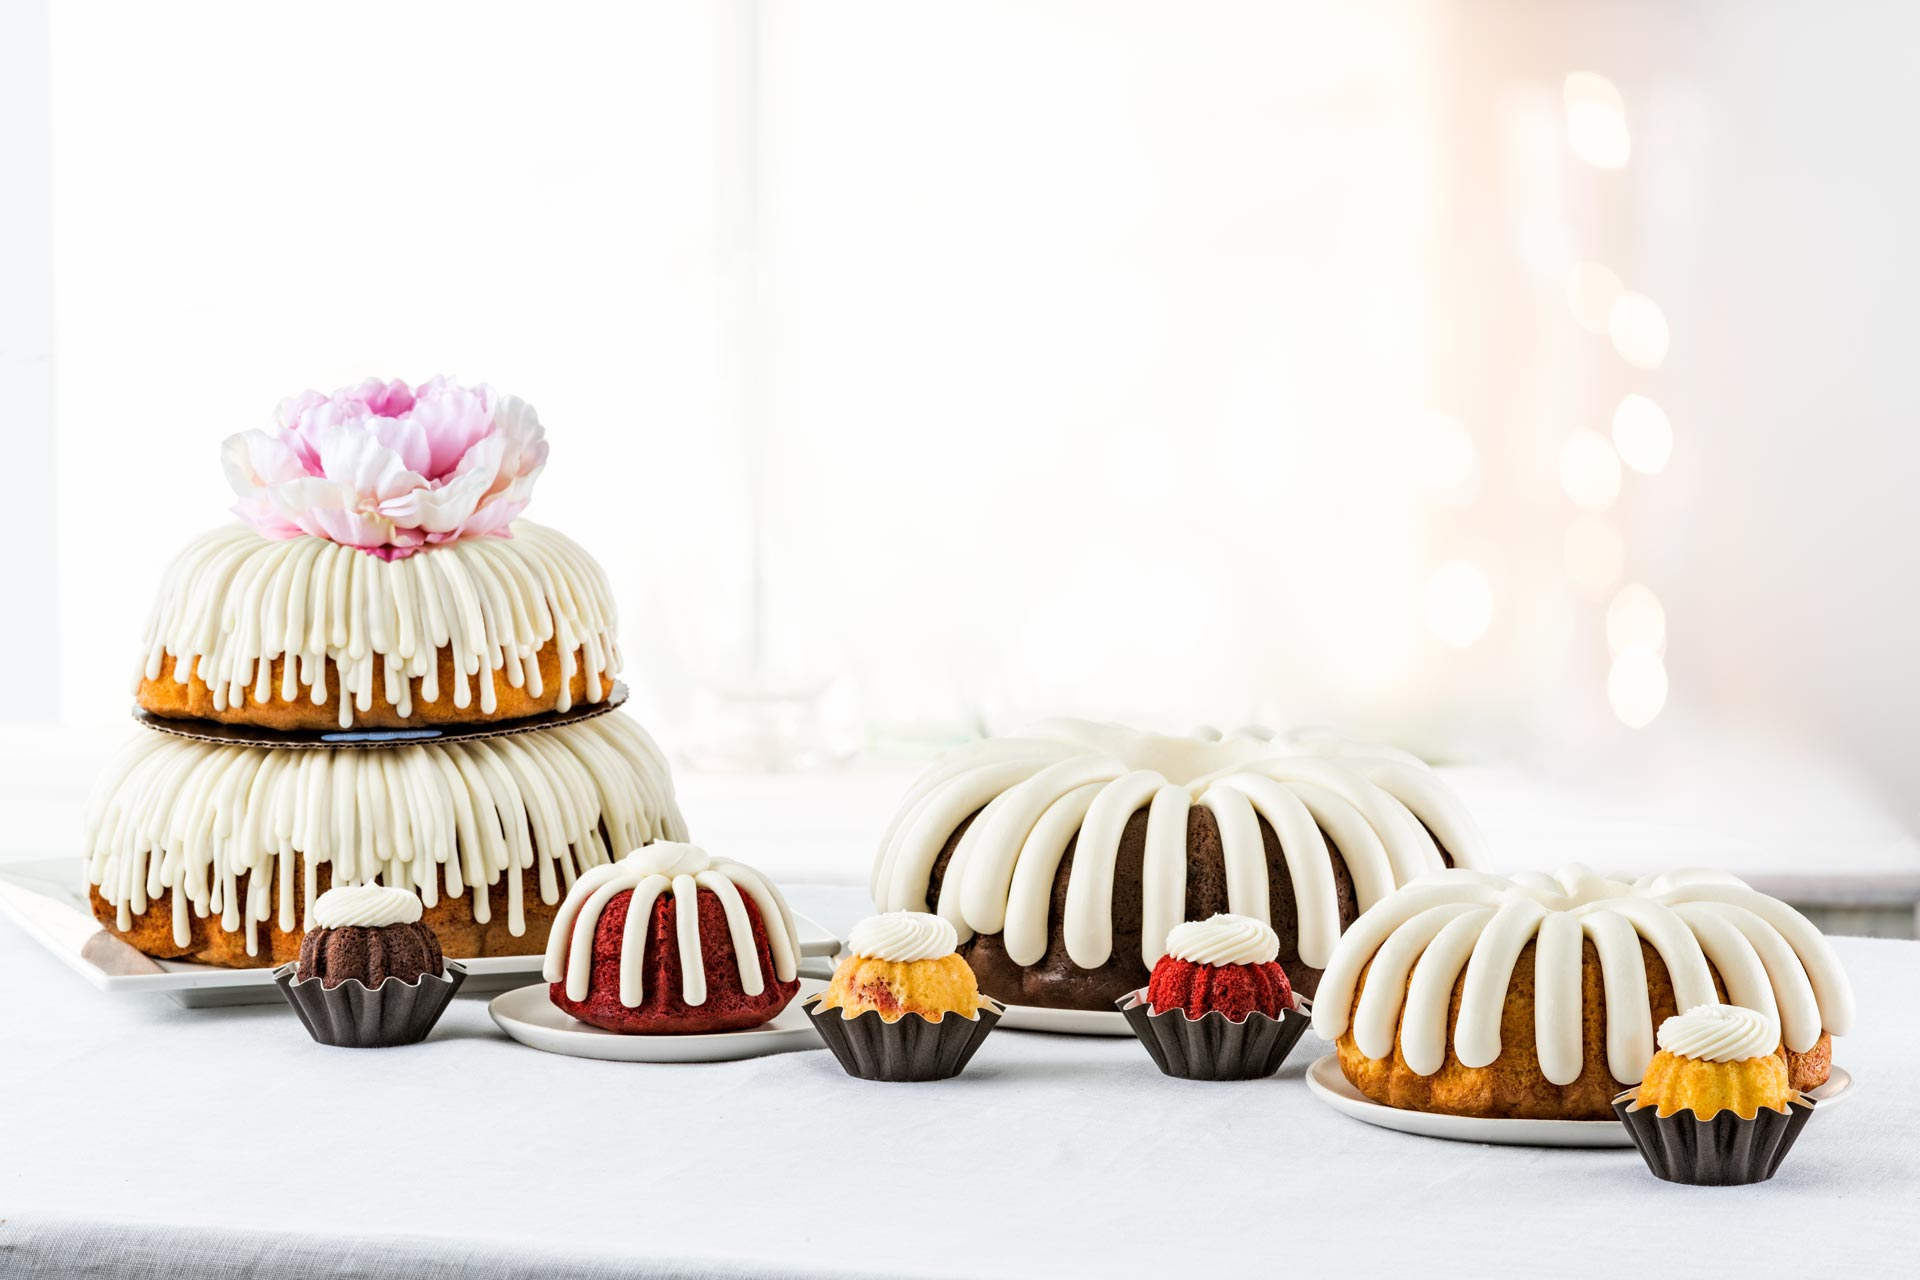 Bundt cakes in full size, bundtlets, and bundtinis